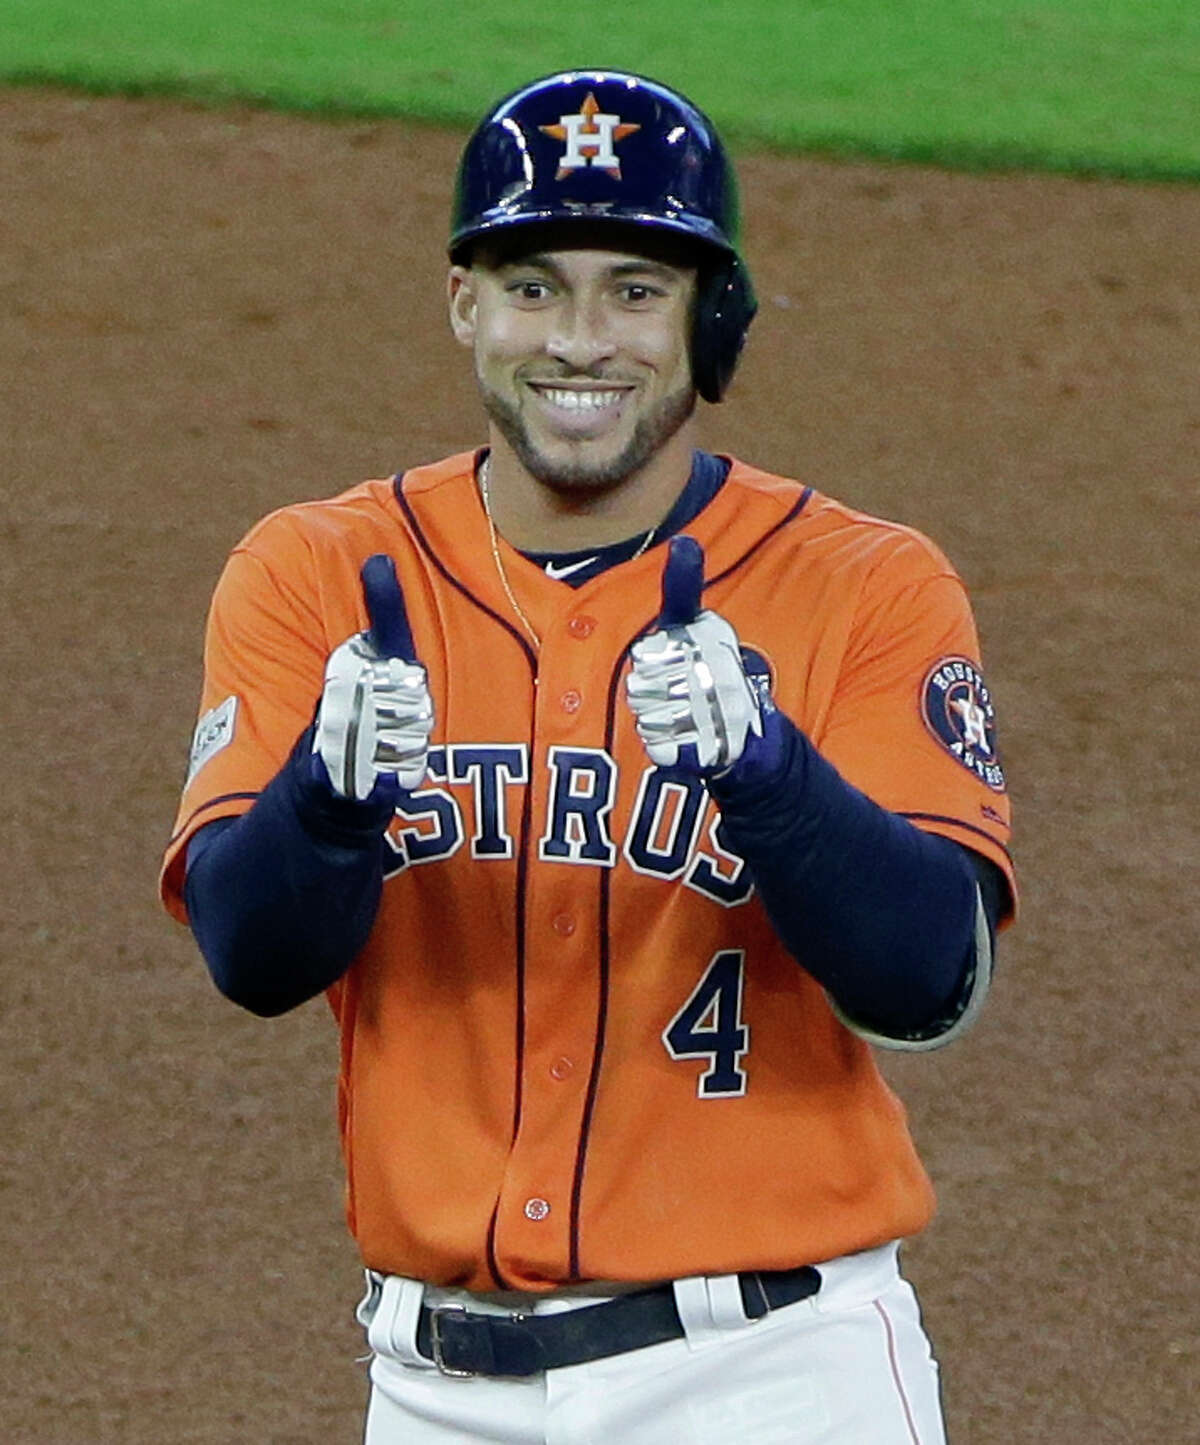 Houston Astros George Springer gives thumbs up as he stands on base after a double hit against the Boston Red Sox during fourth inning in Game 2 of the American League Division Series at Minute Maid Park Friday, Oct. 6, 2017, in Houston.